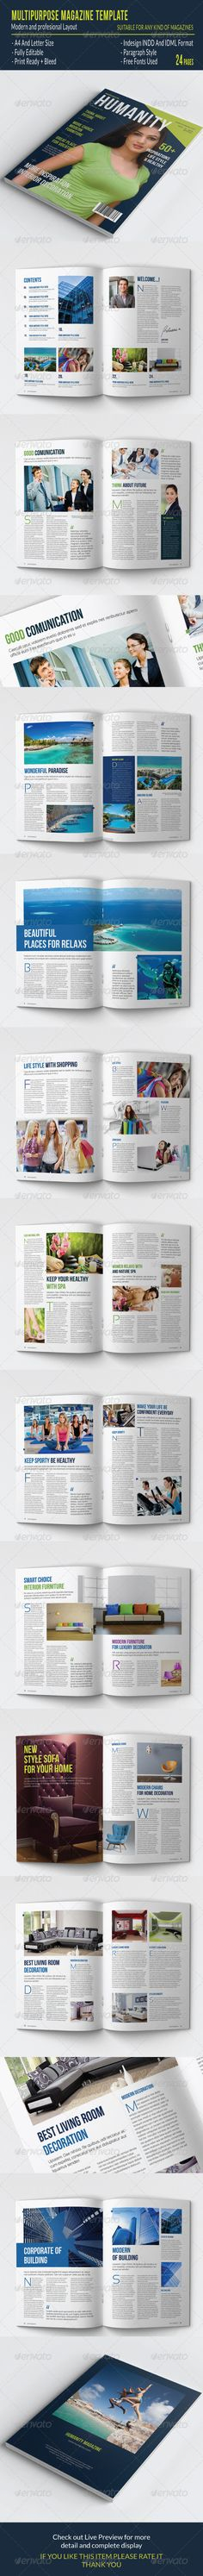 Multipurpose Magazine Template — InDesign INDD #newspaper #simple • Available here → https://graphicriver.net/item/multipurpose-magazine-template/7758215?ref=pxcr